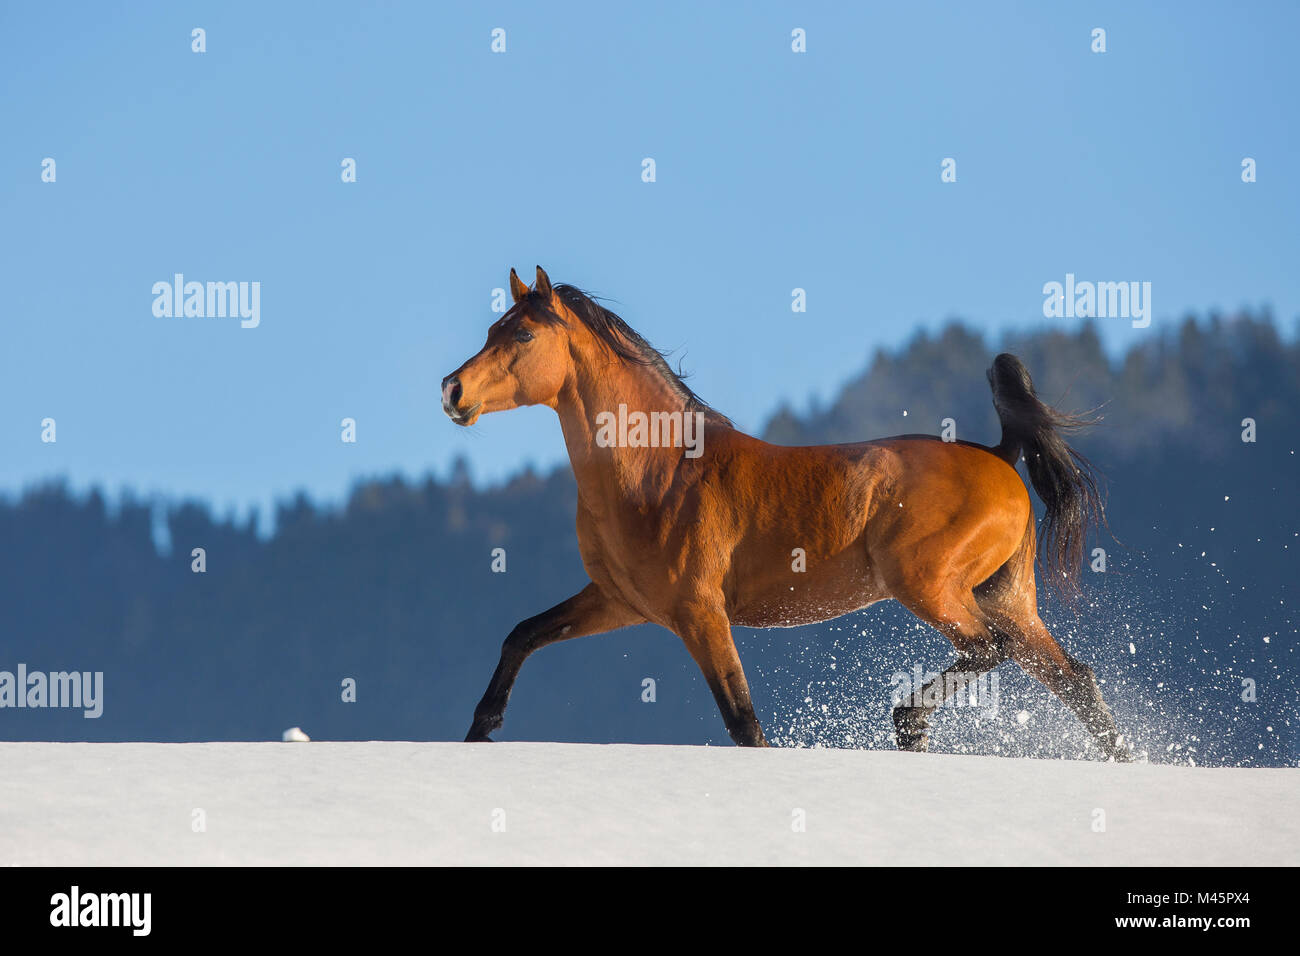 Arabian horse,stallion runs in snow,Tyrol,Austria Stock Photo